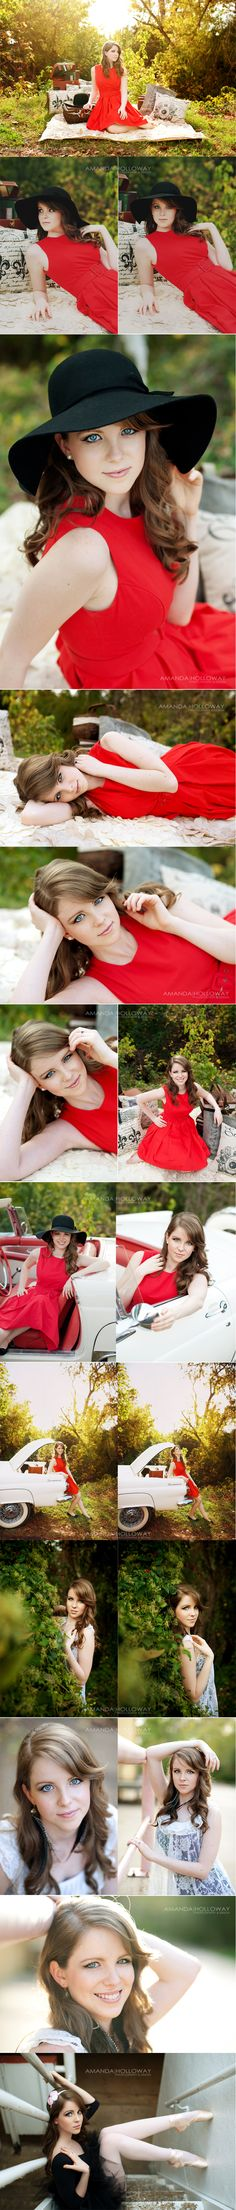 #seniors #portraits #poses